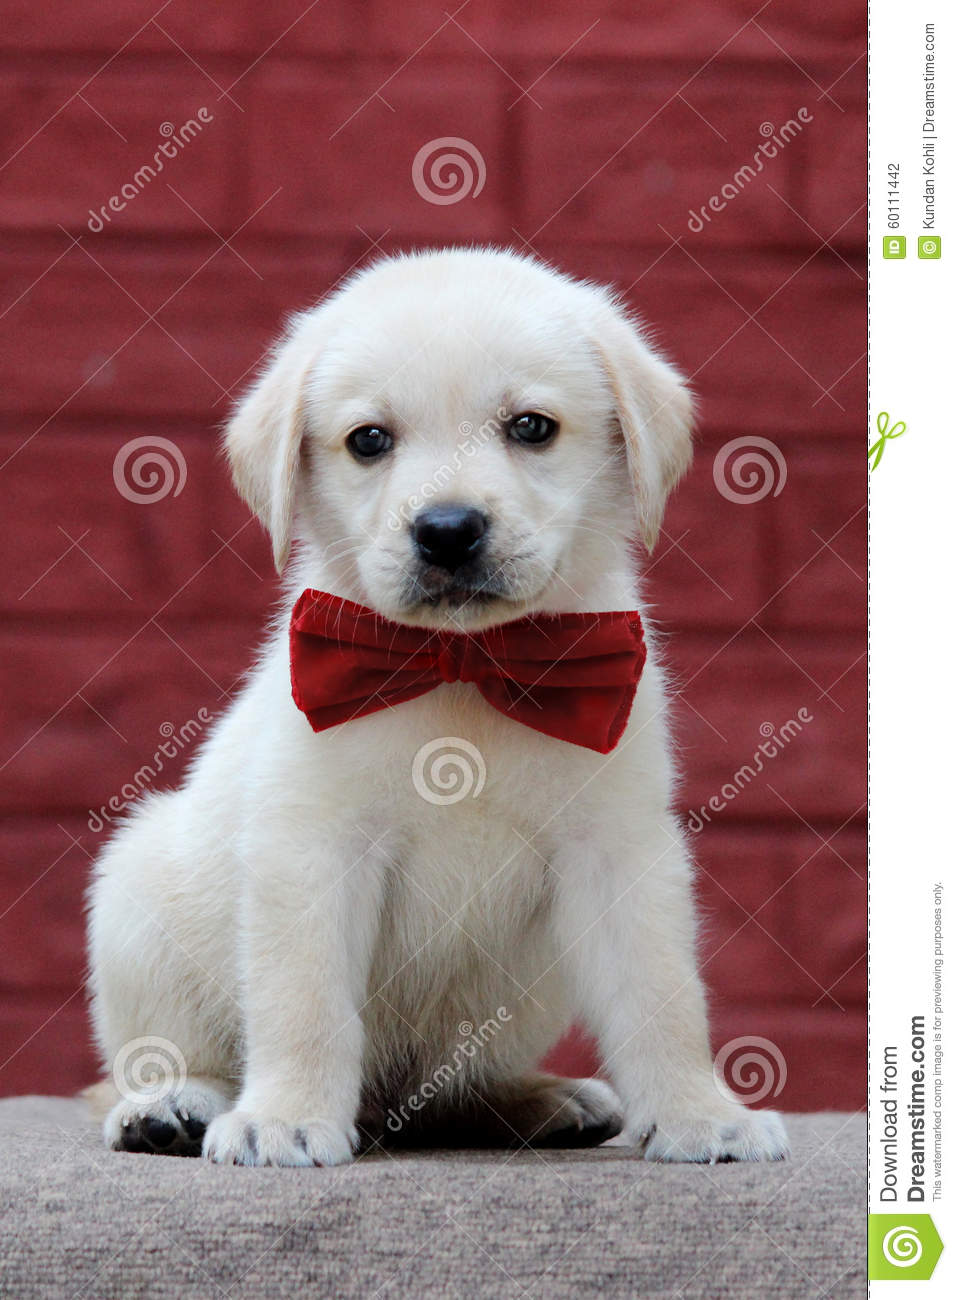 Download Wallpaper Bow Adorable Dog - cute-labrador-puppy-wearing-red-bow-60111442  Collection_19649  .jpg